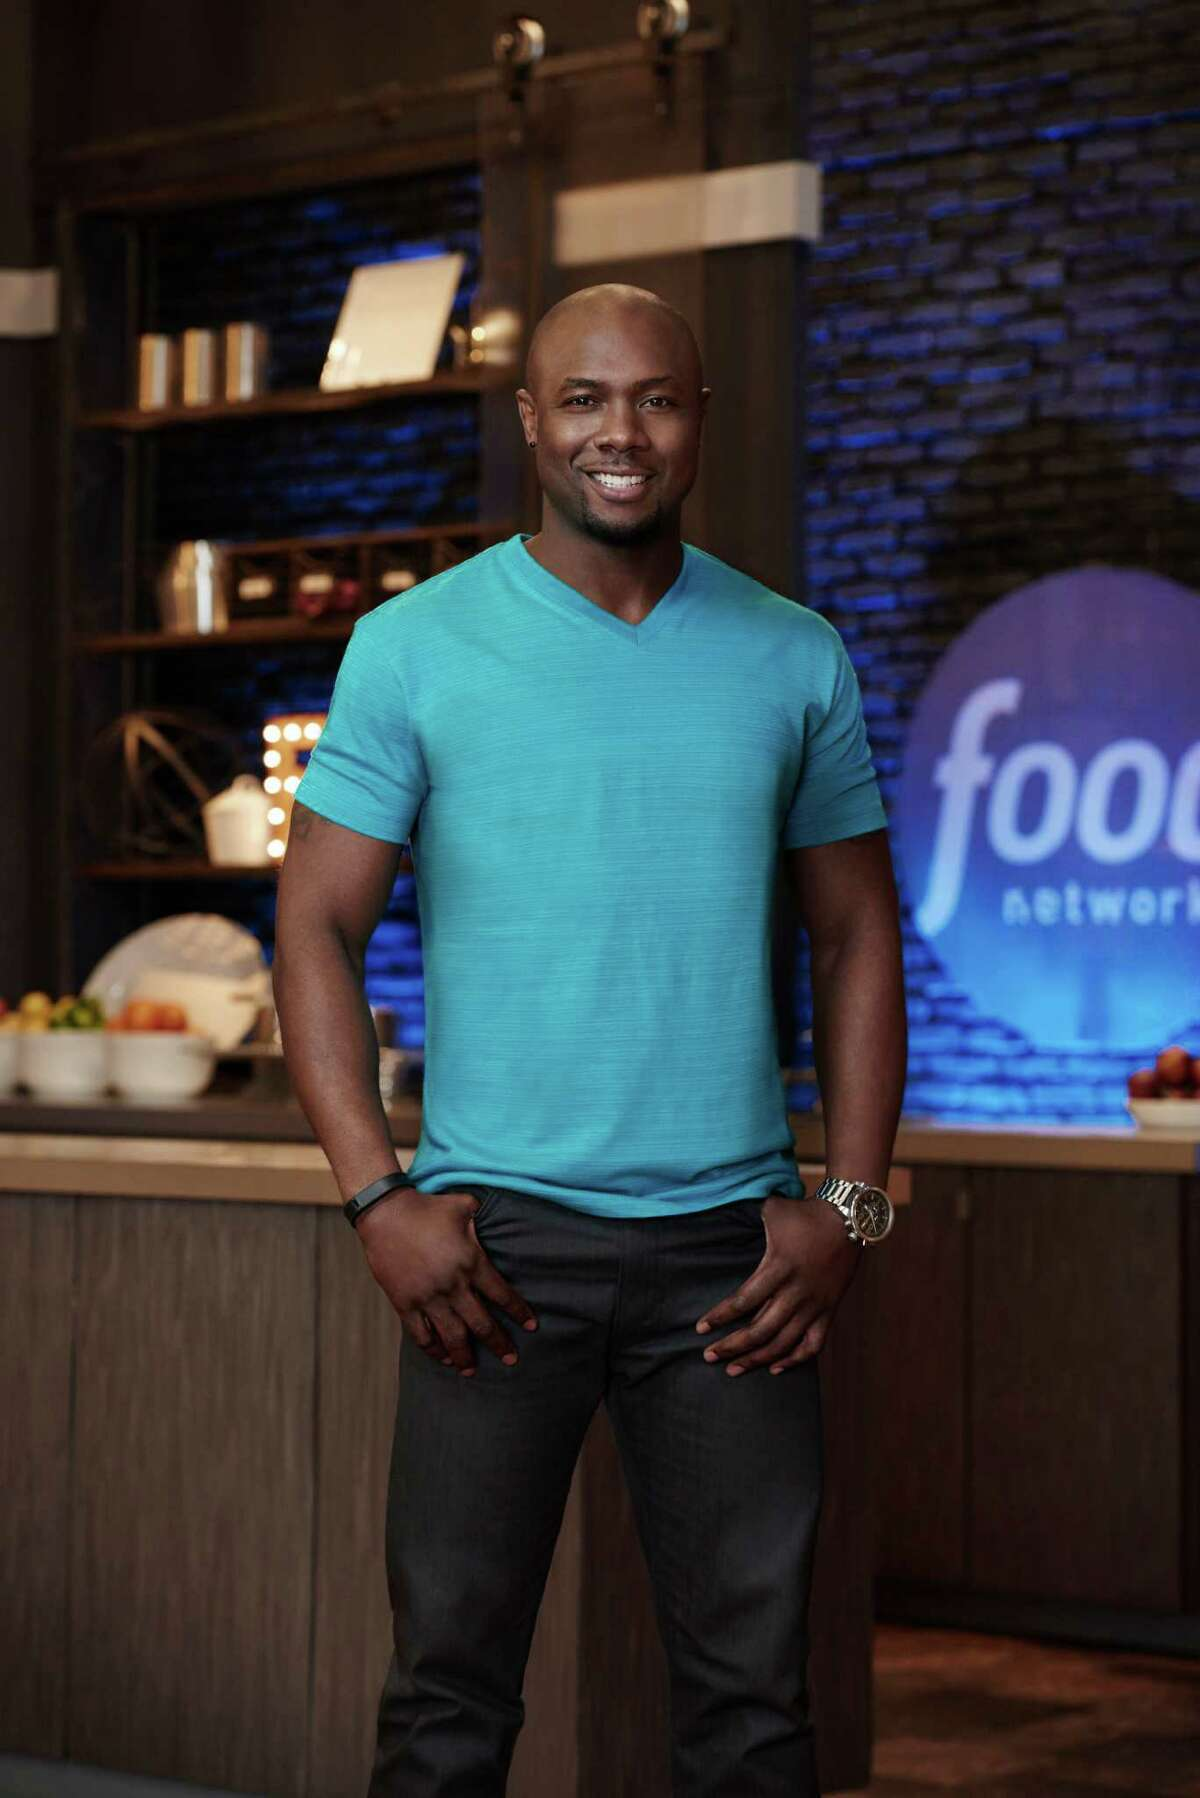 """Houston's Eddie Jackson (who owns a private fitness gym in Cypress) is among the top three finalists on Food Network's """"Food Network Star."""" The show's finale will be broadcast Aug. 16. Finalist Eddie Jackson, as seen on Food Network Star, Season 11."""